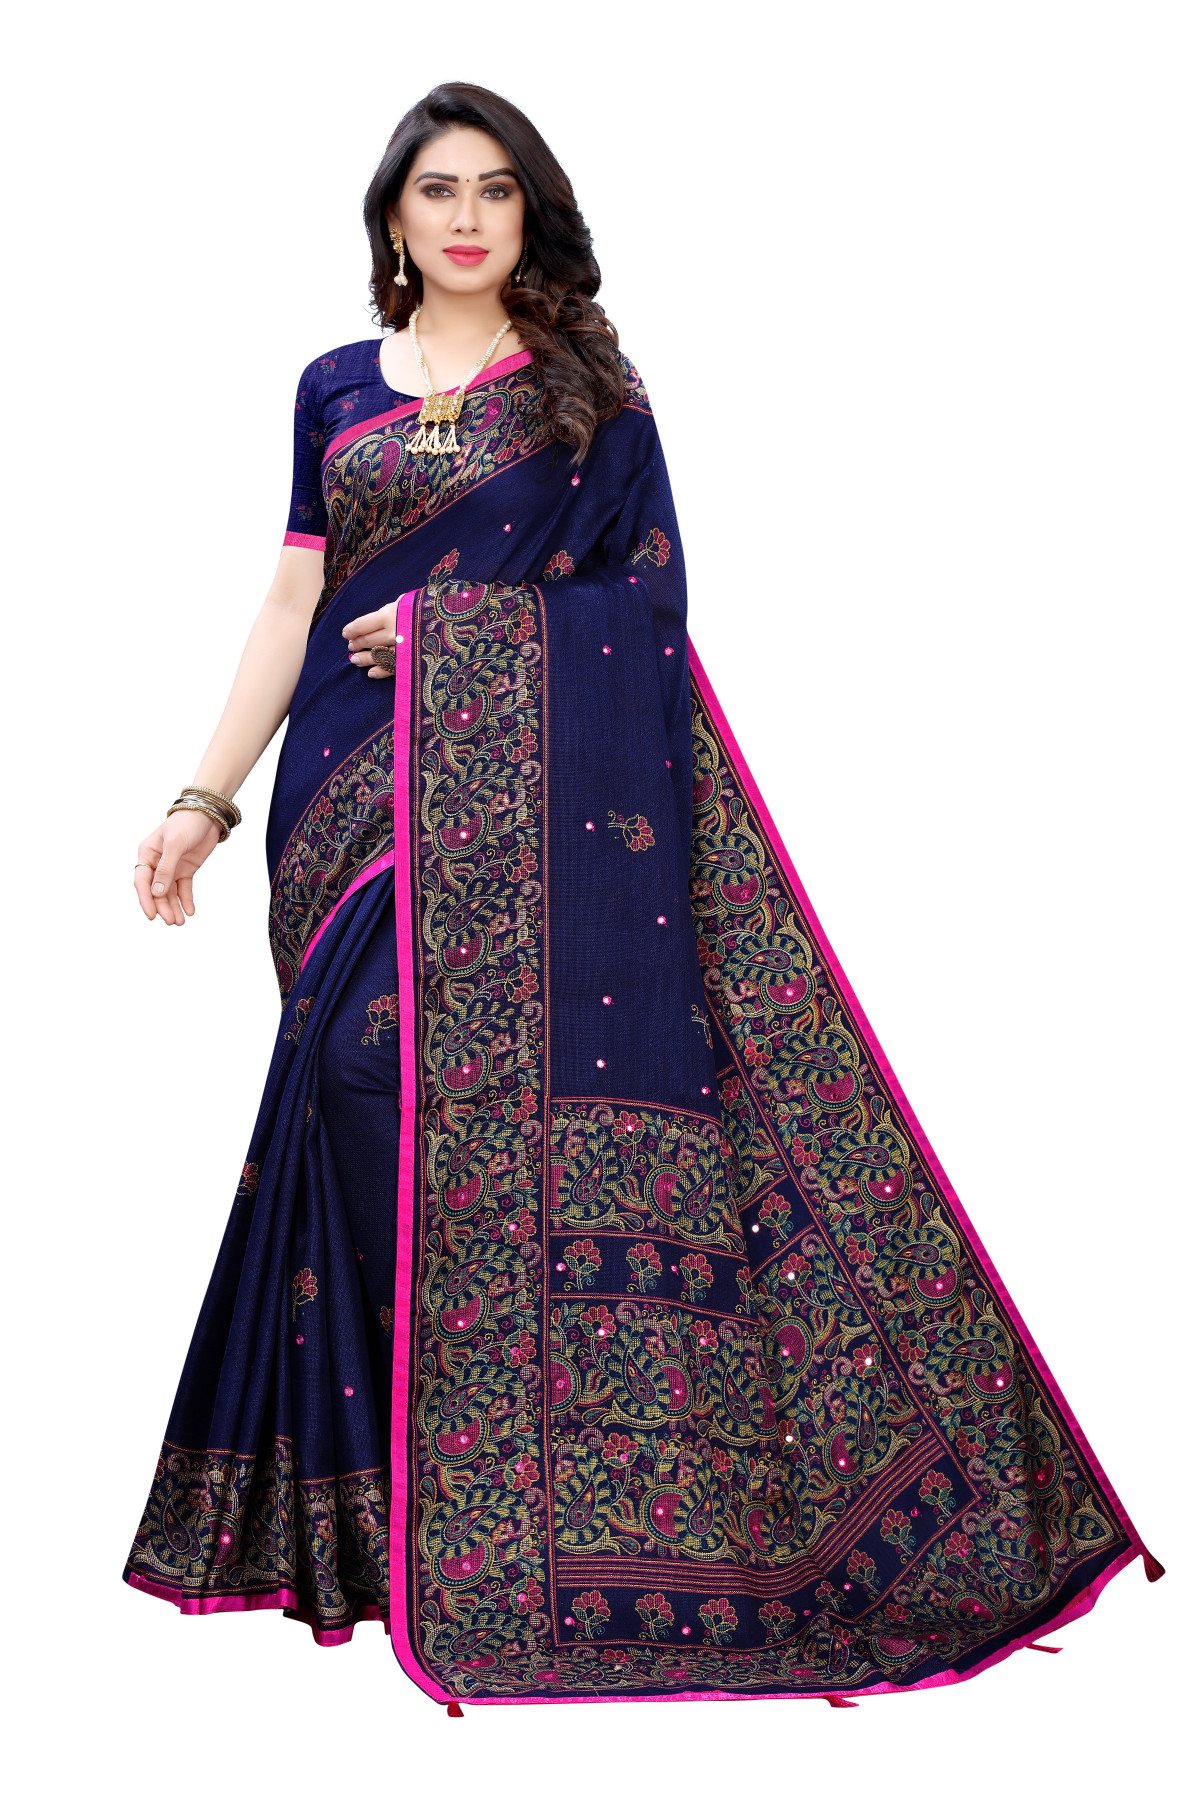 Linen Sarees - Buy Designer Navy Blue Printed Linen Sarees For Womens Online in India | Ethnicbazaar